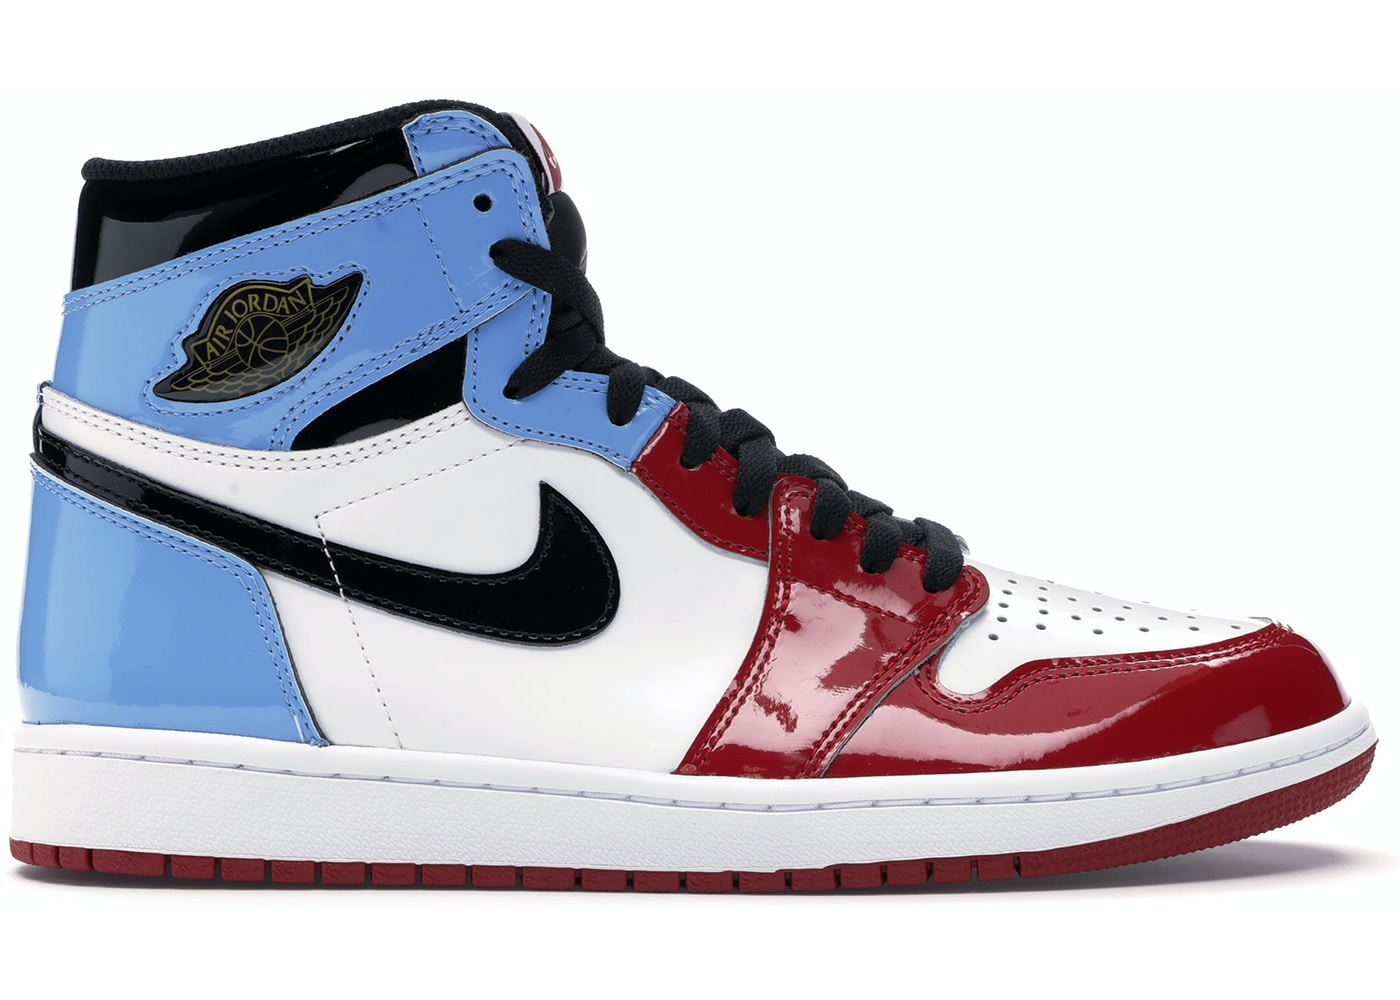 Jordan 1 Retro High Fearless Unc Chicago Ck5666 100